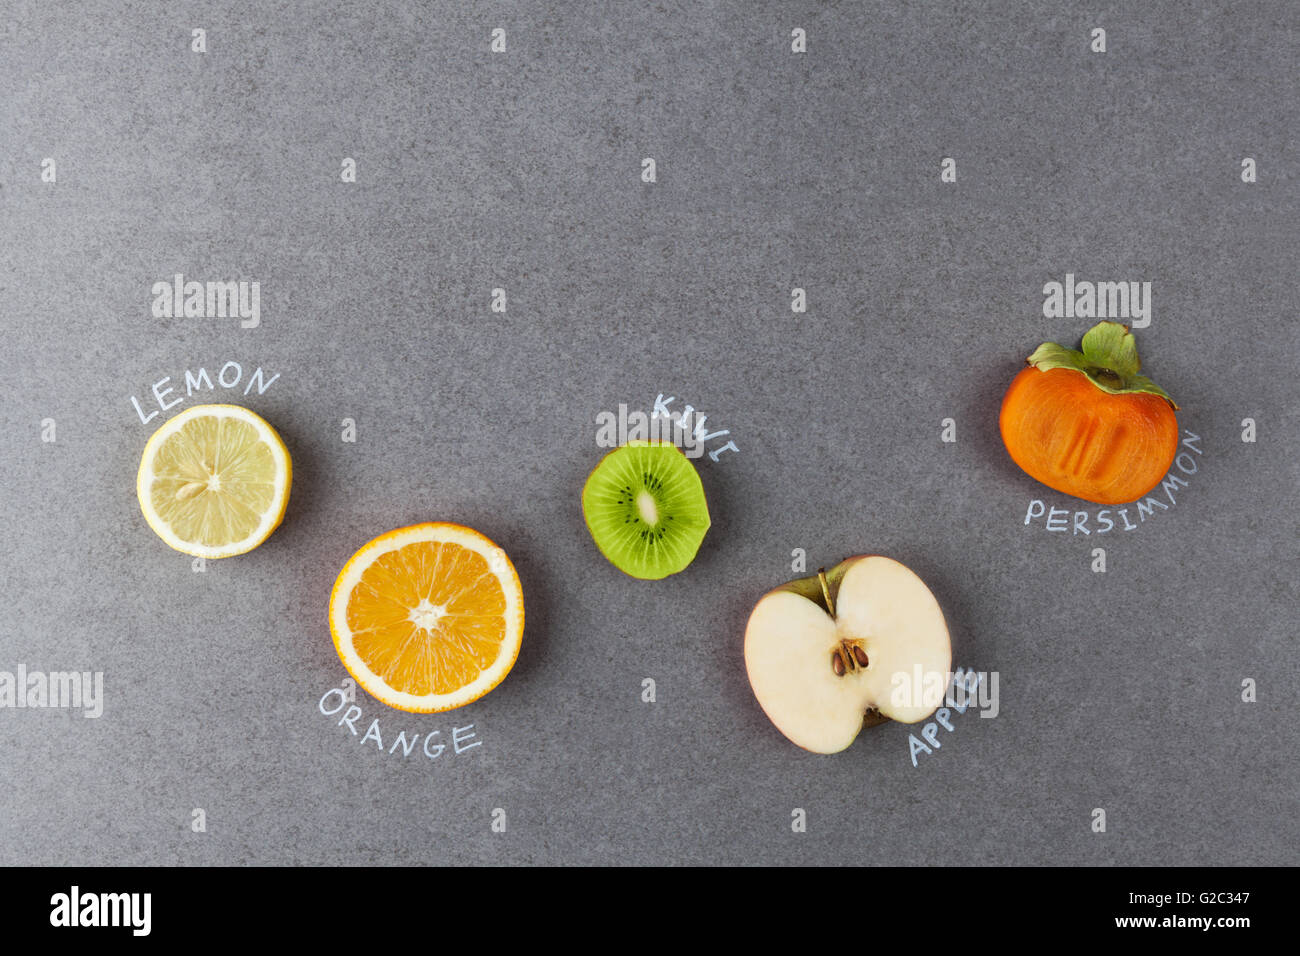 Slices of fruits with handwritten lables on stone surface. Lemon, orange, kiwi, apple, persimmon. Top view with - Stock Image